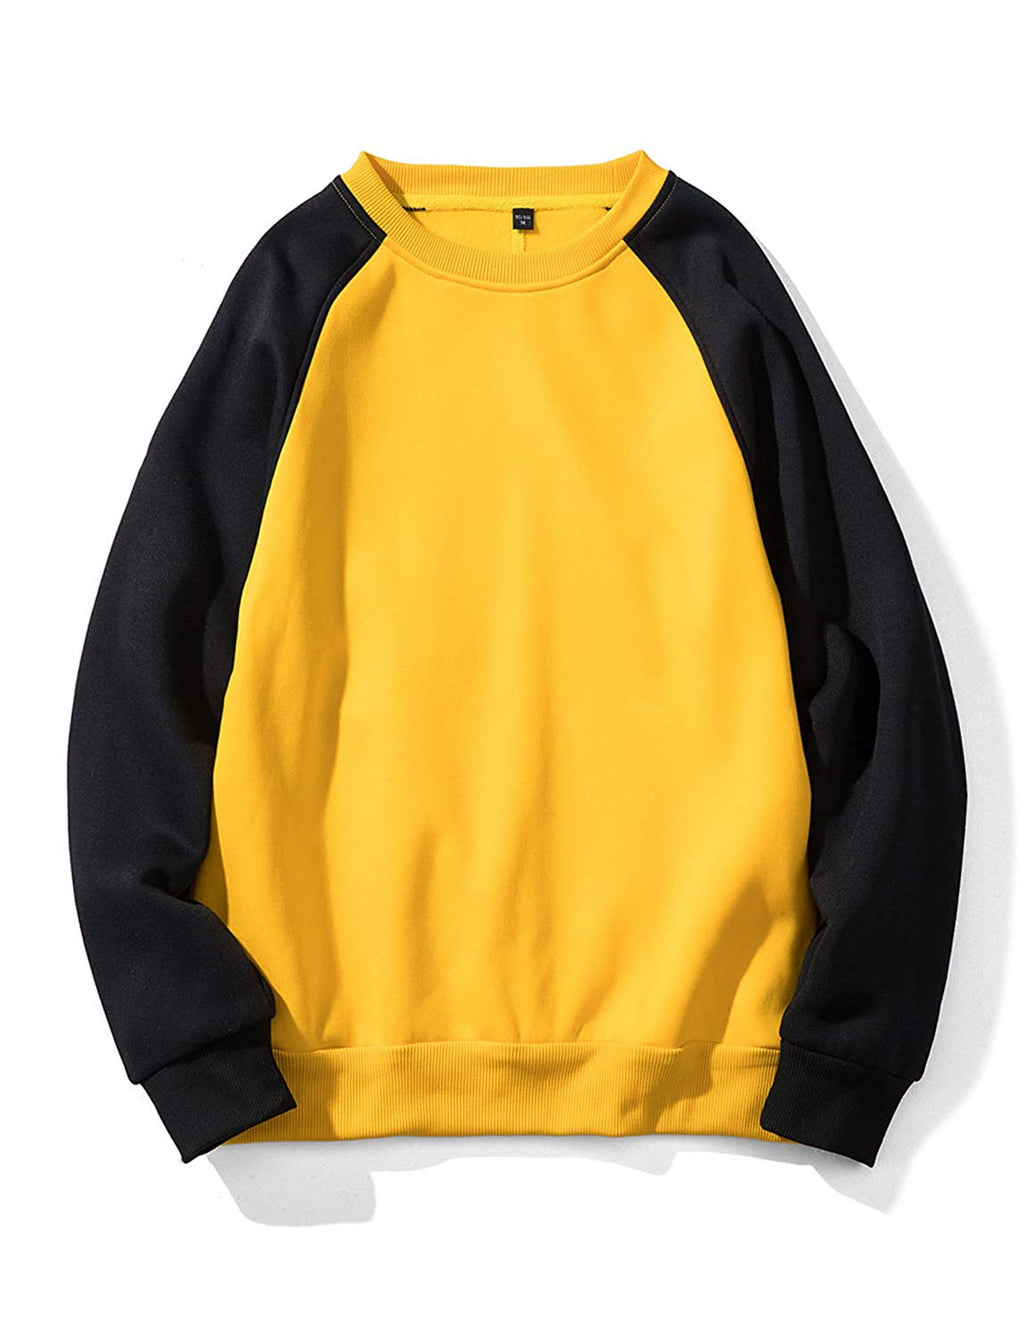 Hip Hop Streetwear Sweater